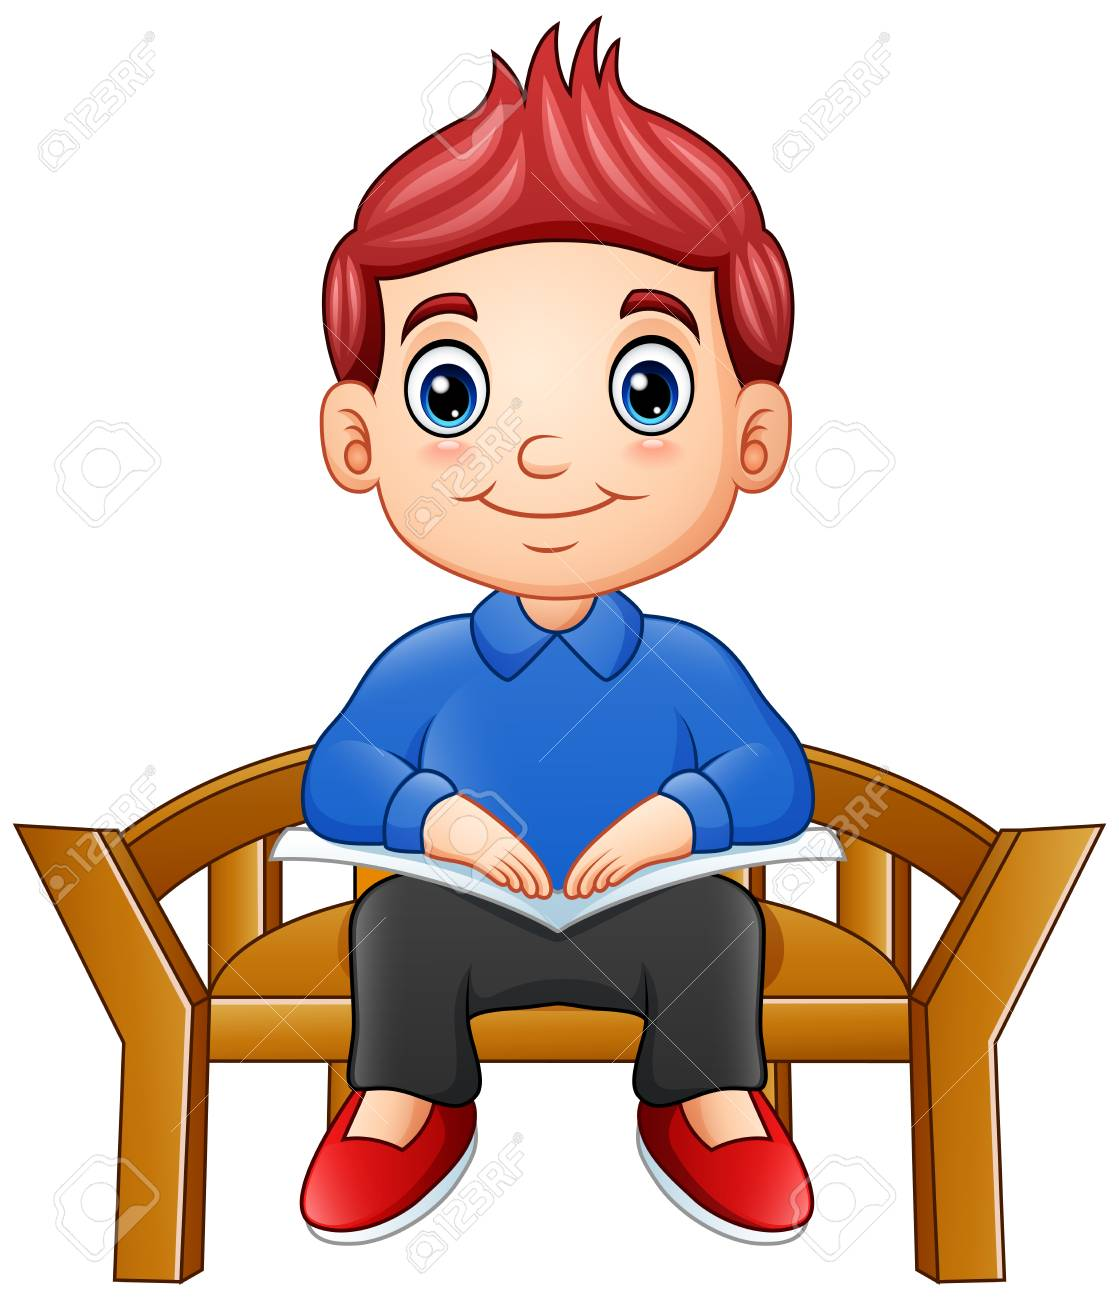 Child Sitting On Chair Clipart.